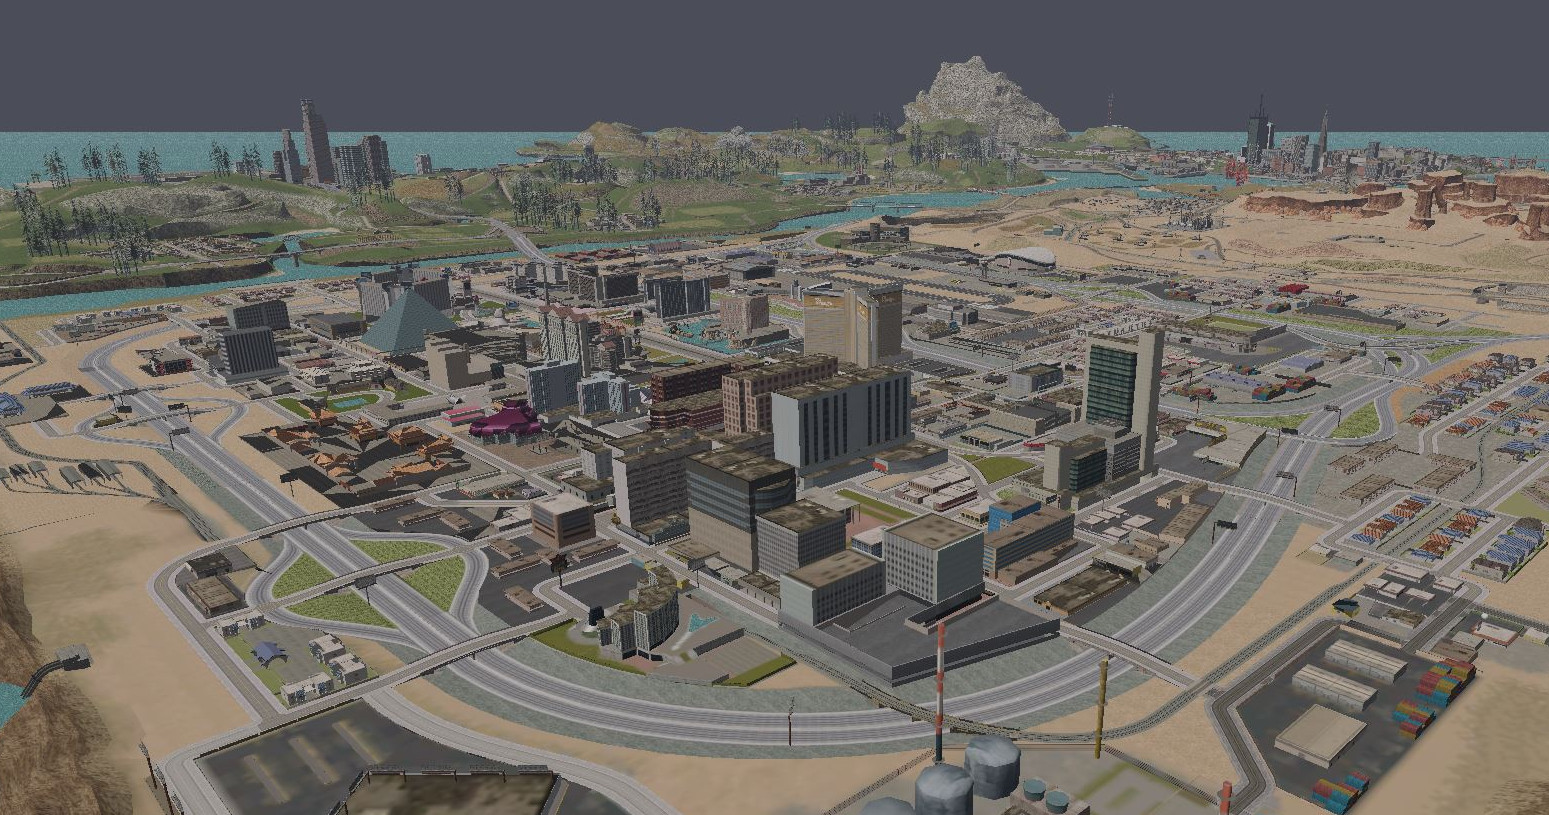 See from one side of GTA: San Andreas to the other in these ... San Andreas City Map on insurgent city map, san andreas airport, hancock city map, grand theft auto 5 city map, san andreas unique stunt jumps, san andreas art, san andreas movie, san andreas stunt jumps insane, san andreas unique jump 1, gta map,